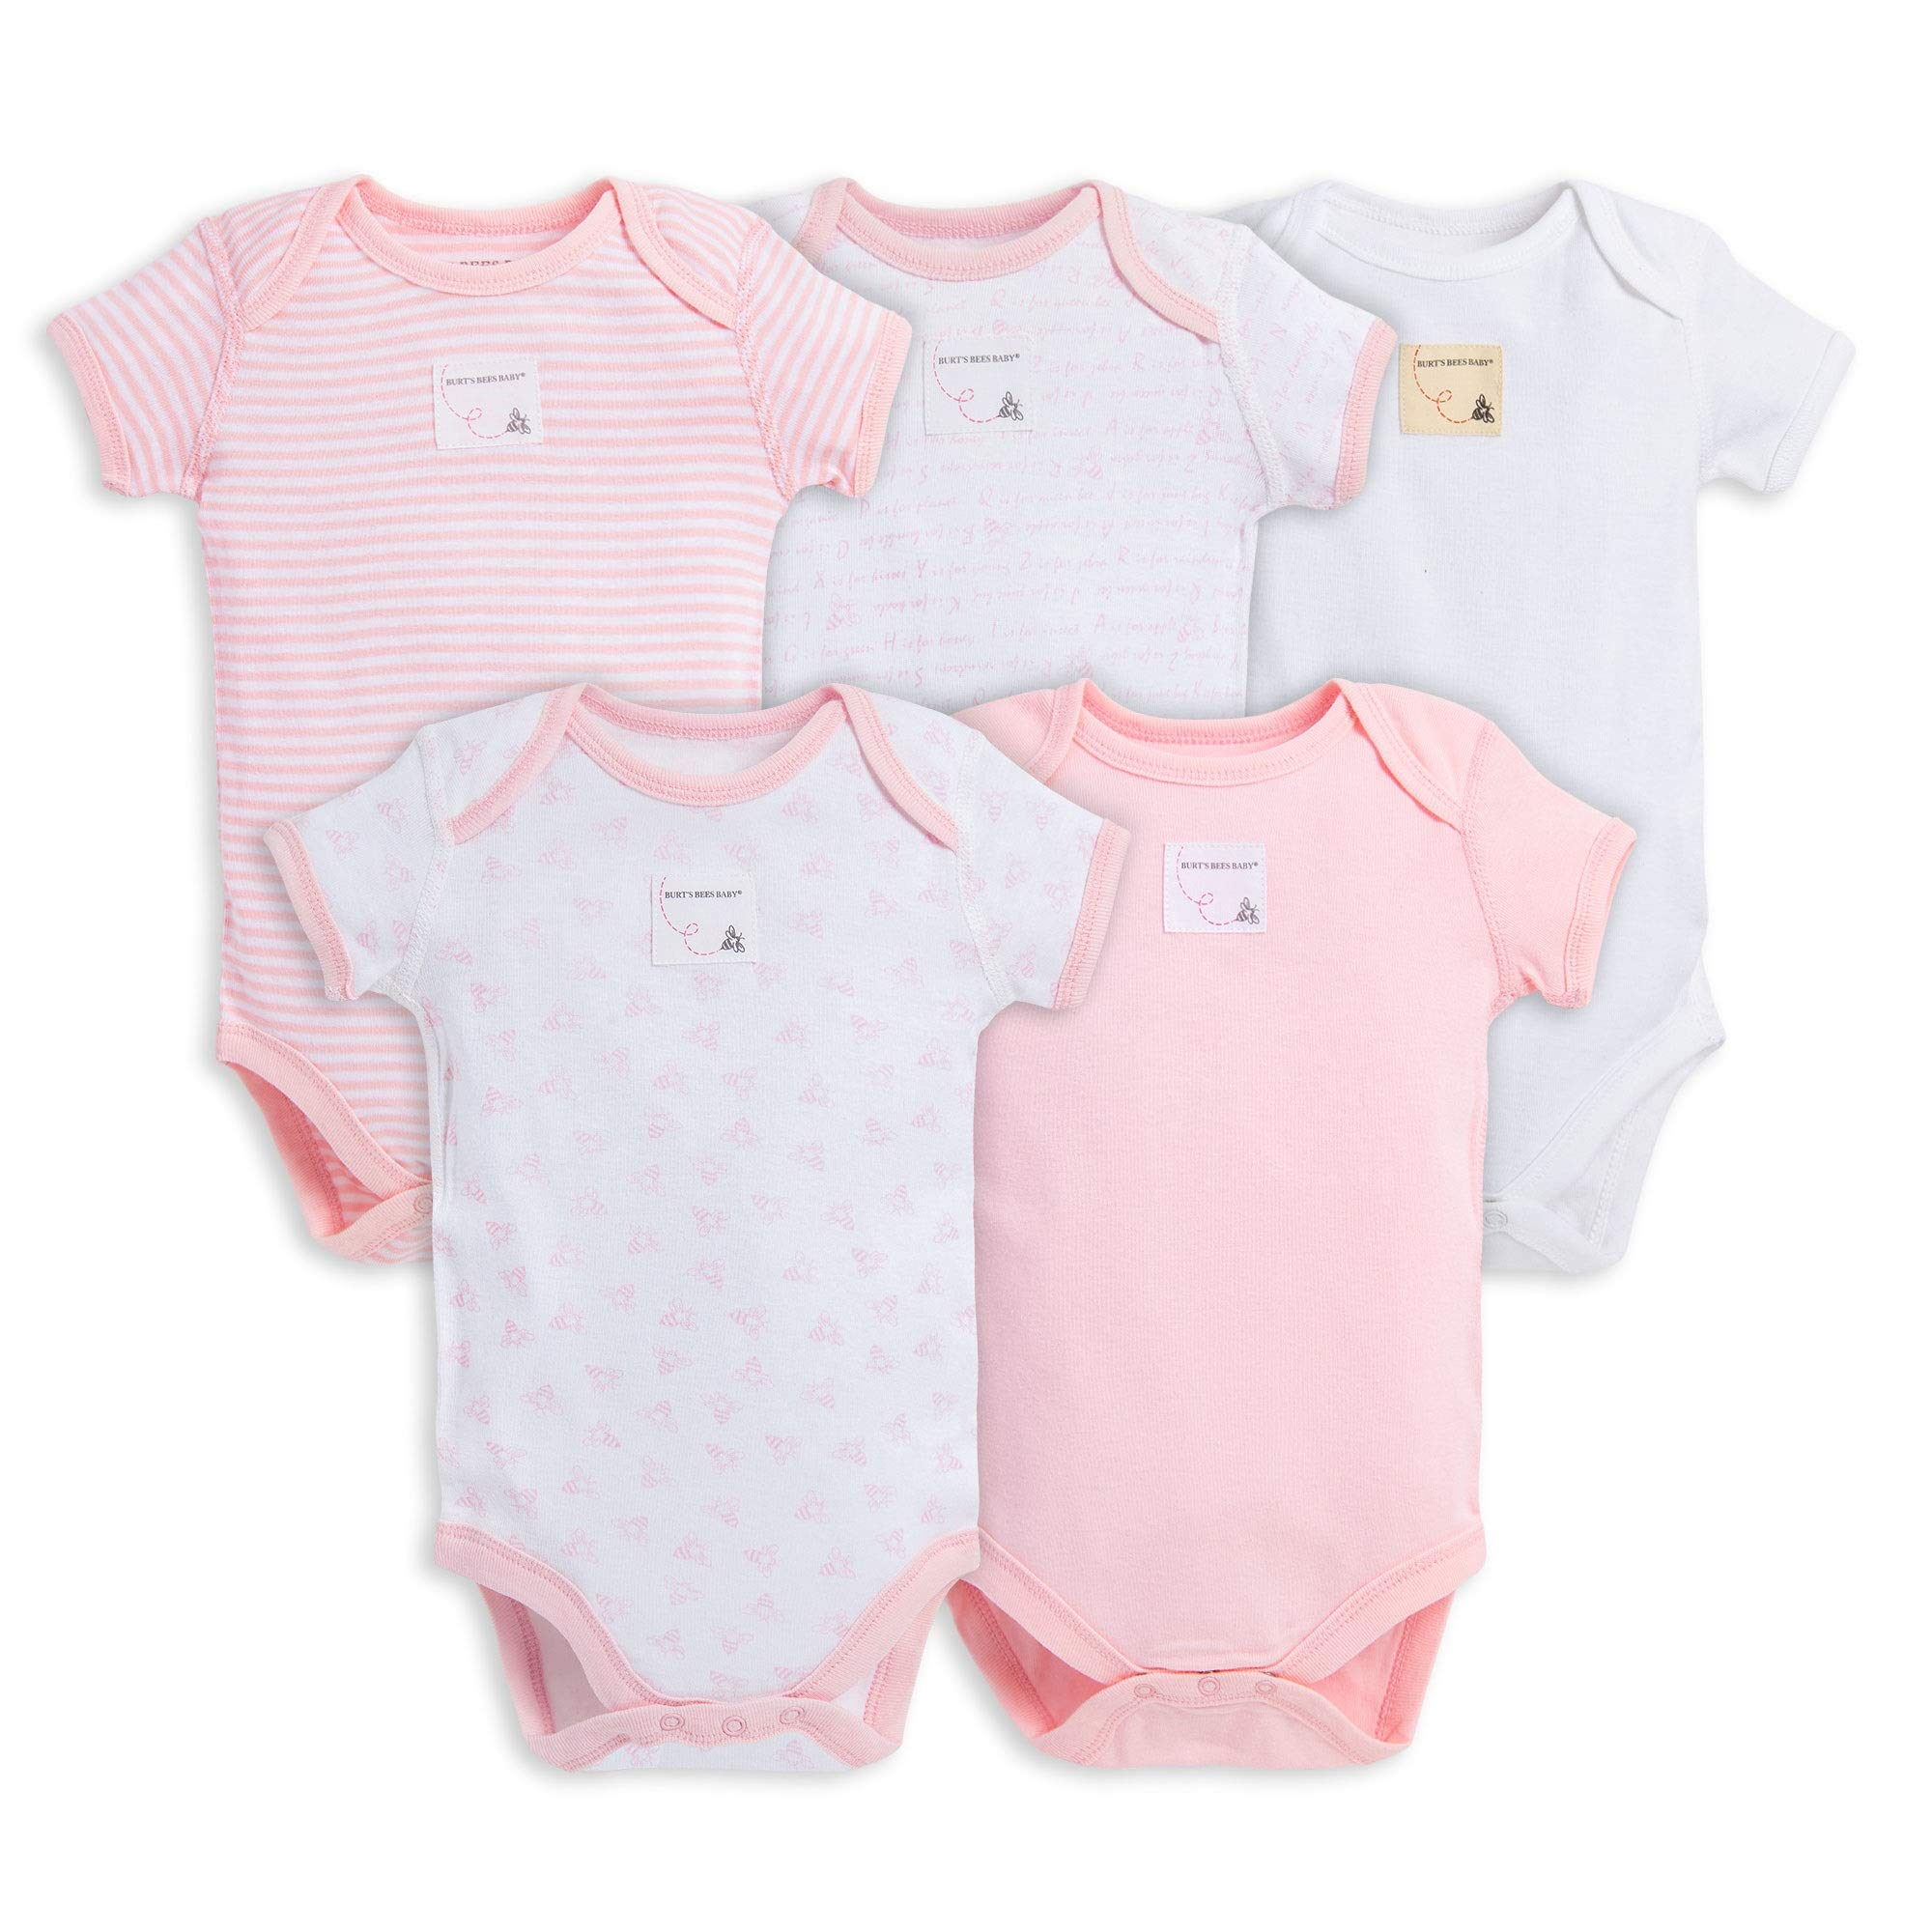 Burt's Bees Baby Unisex Baby Bodysuits, 5-Pack Short & Long Sleeve One-Pieces, 100% Organic Cotton, Blossom Prints, 12 Months